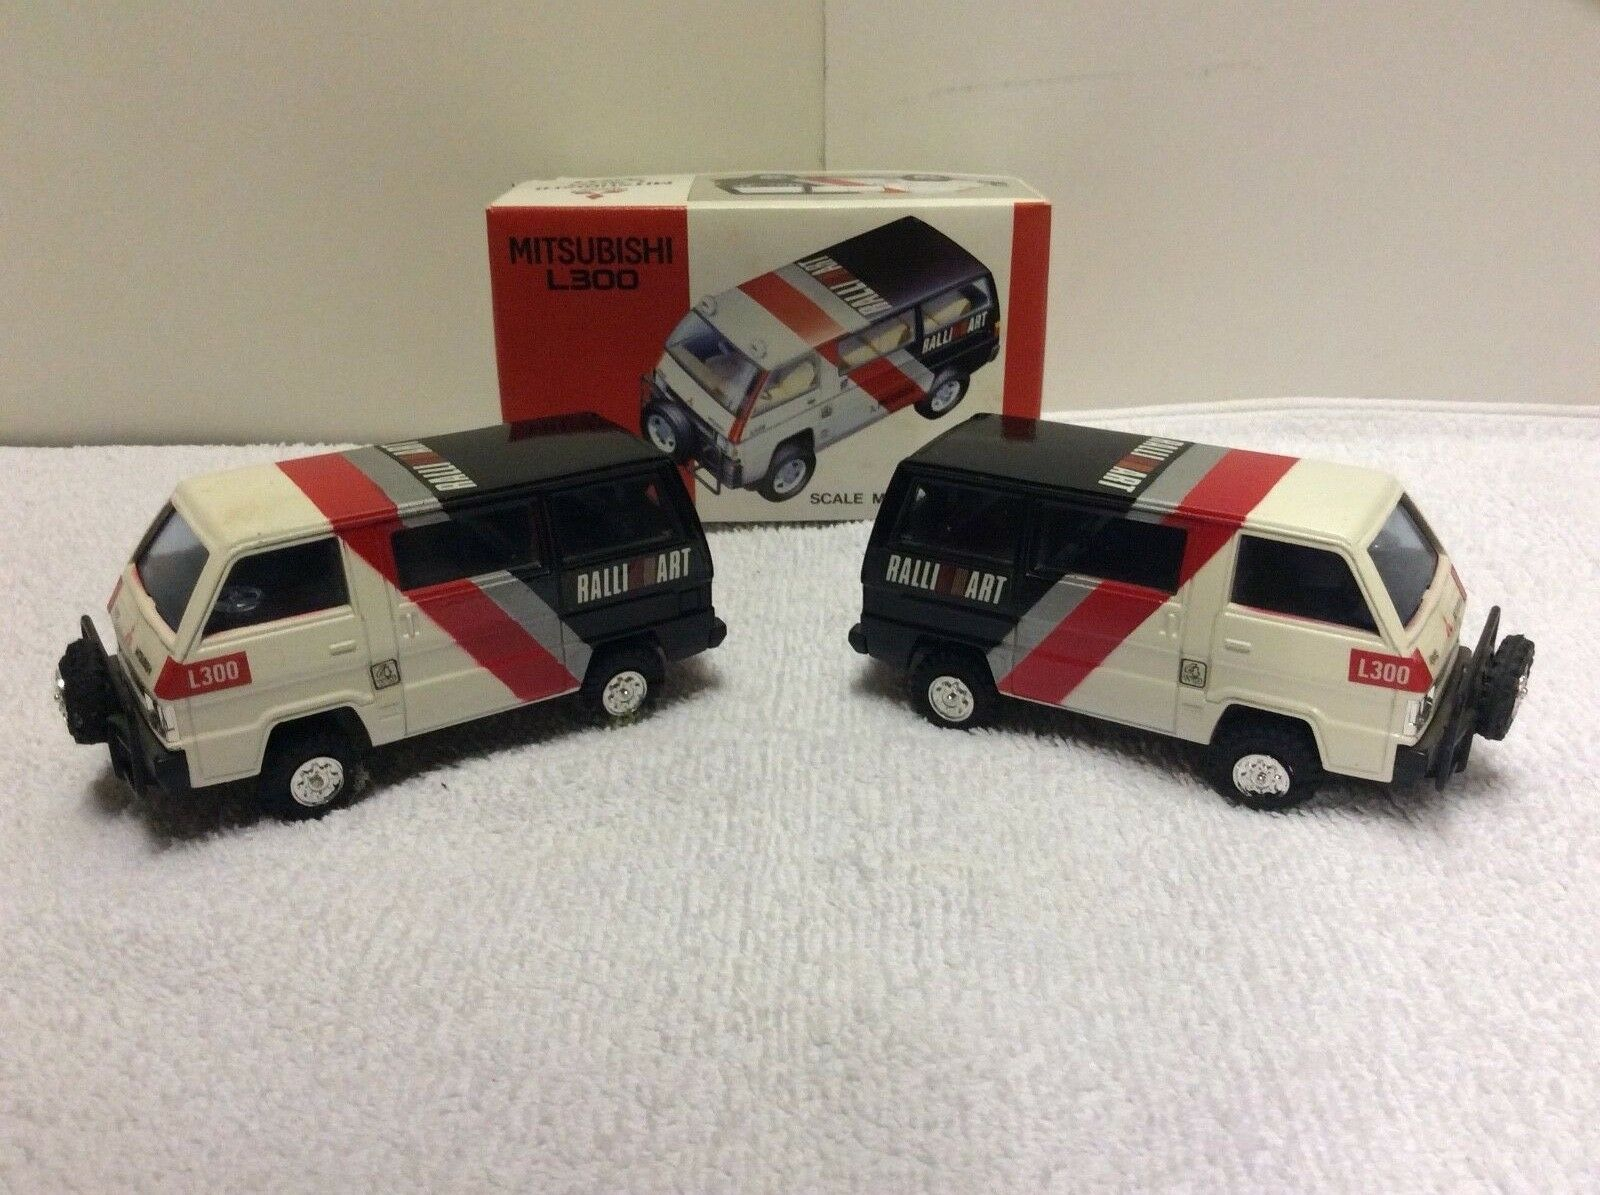 Ultimate Mitsubishi L300 Ralliart Support Edition Model Collection - WRC